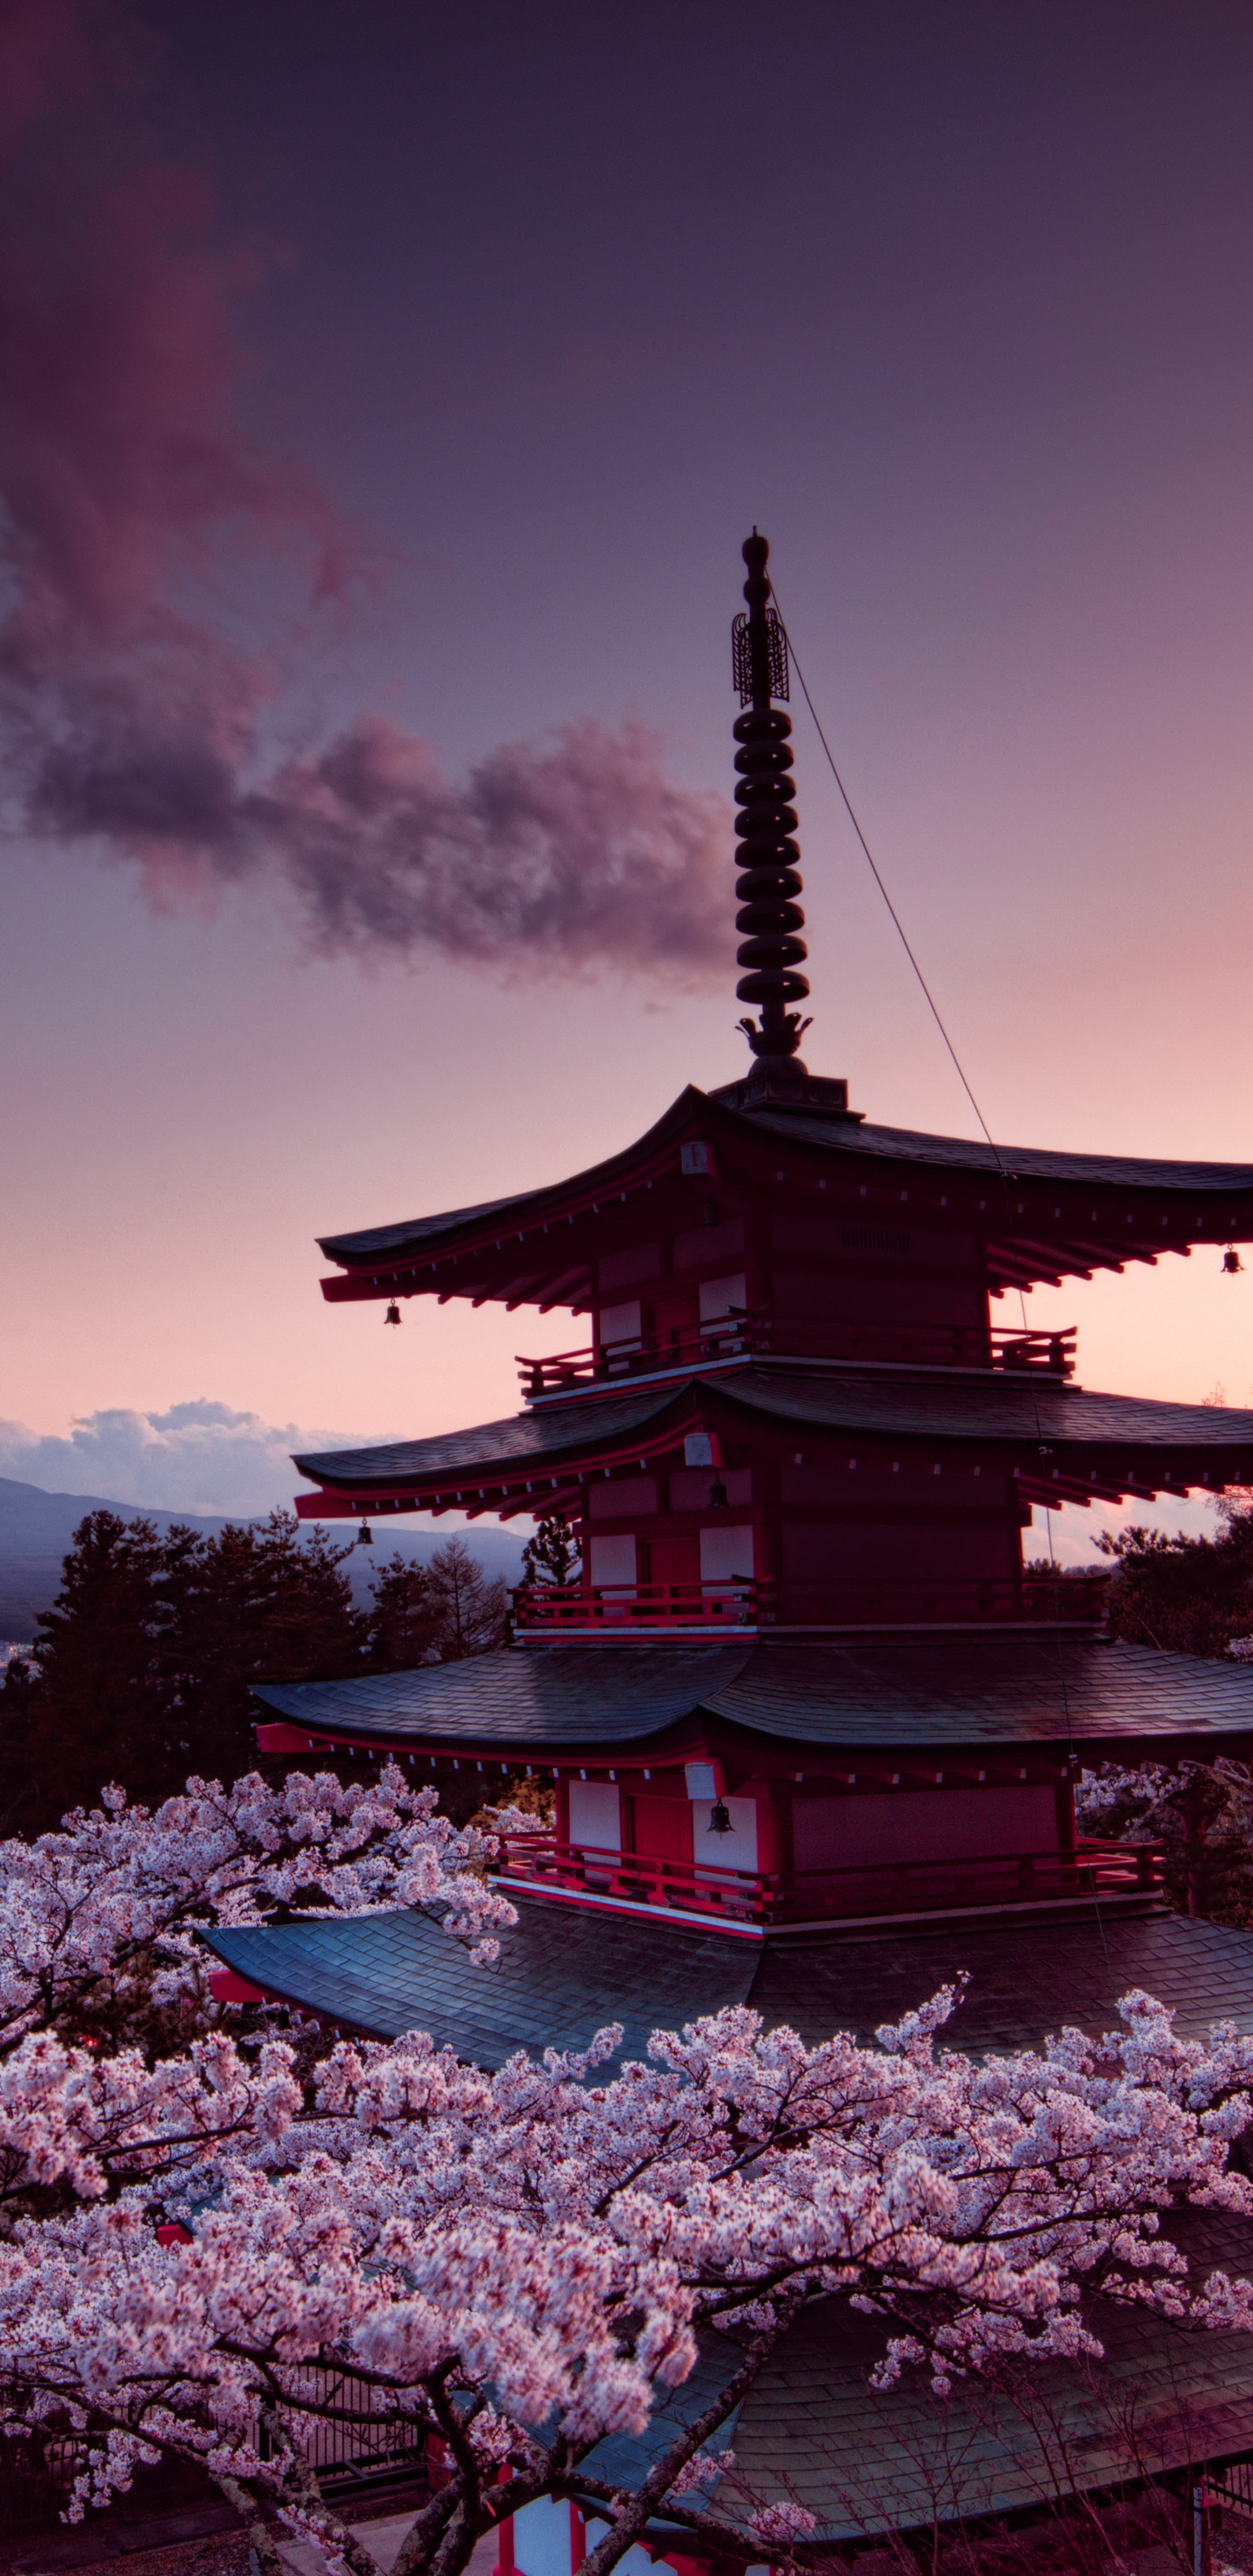 1440x2960 churei tower mount fuji in japan 8k samsung - Samsung s9 wallpaper 4k ...